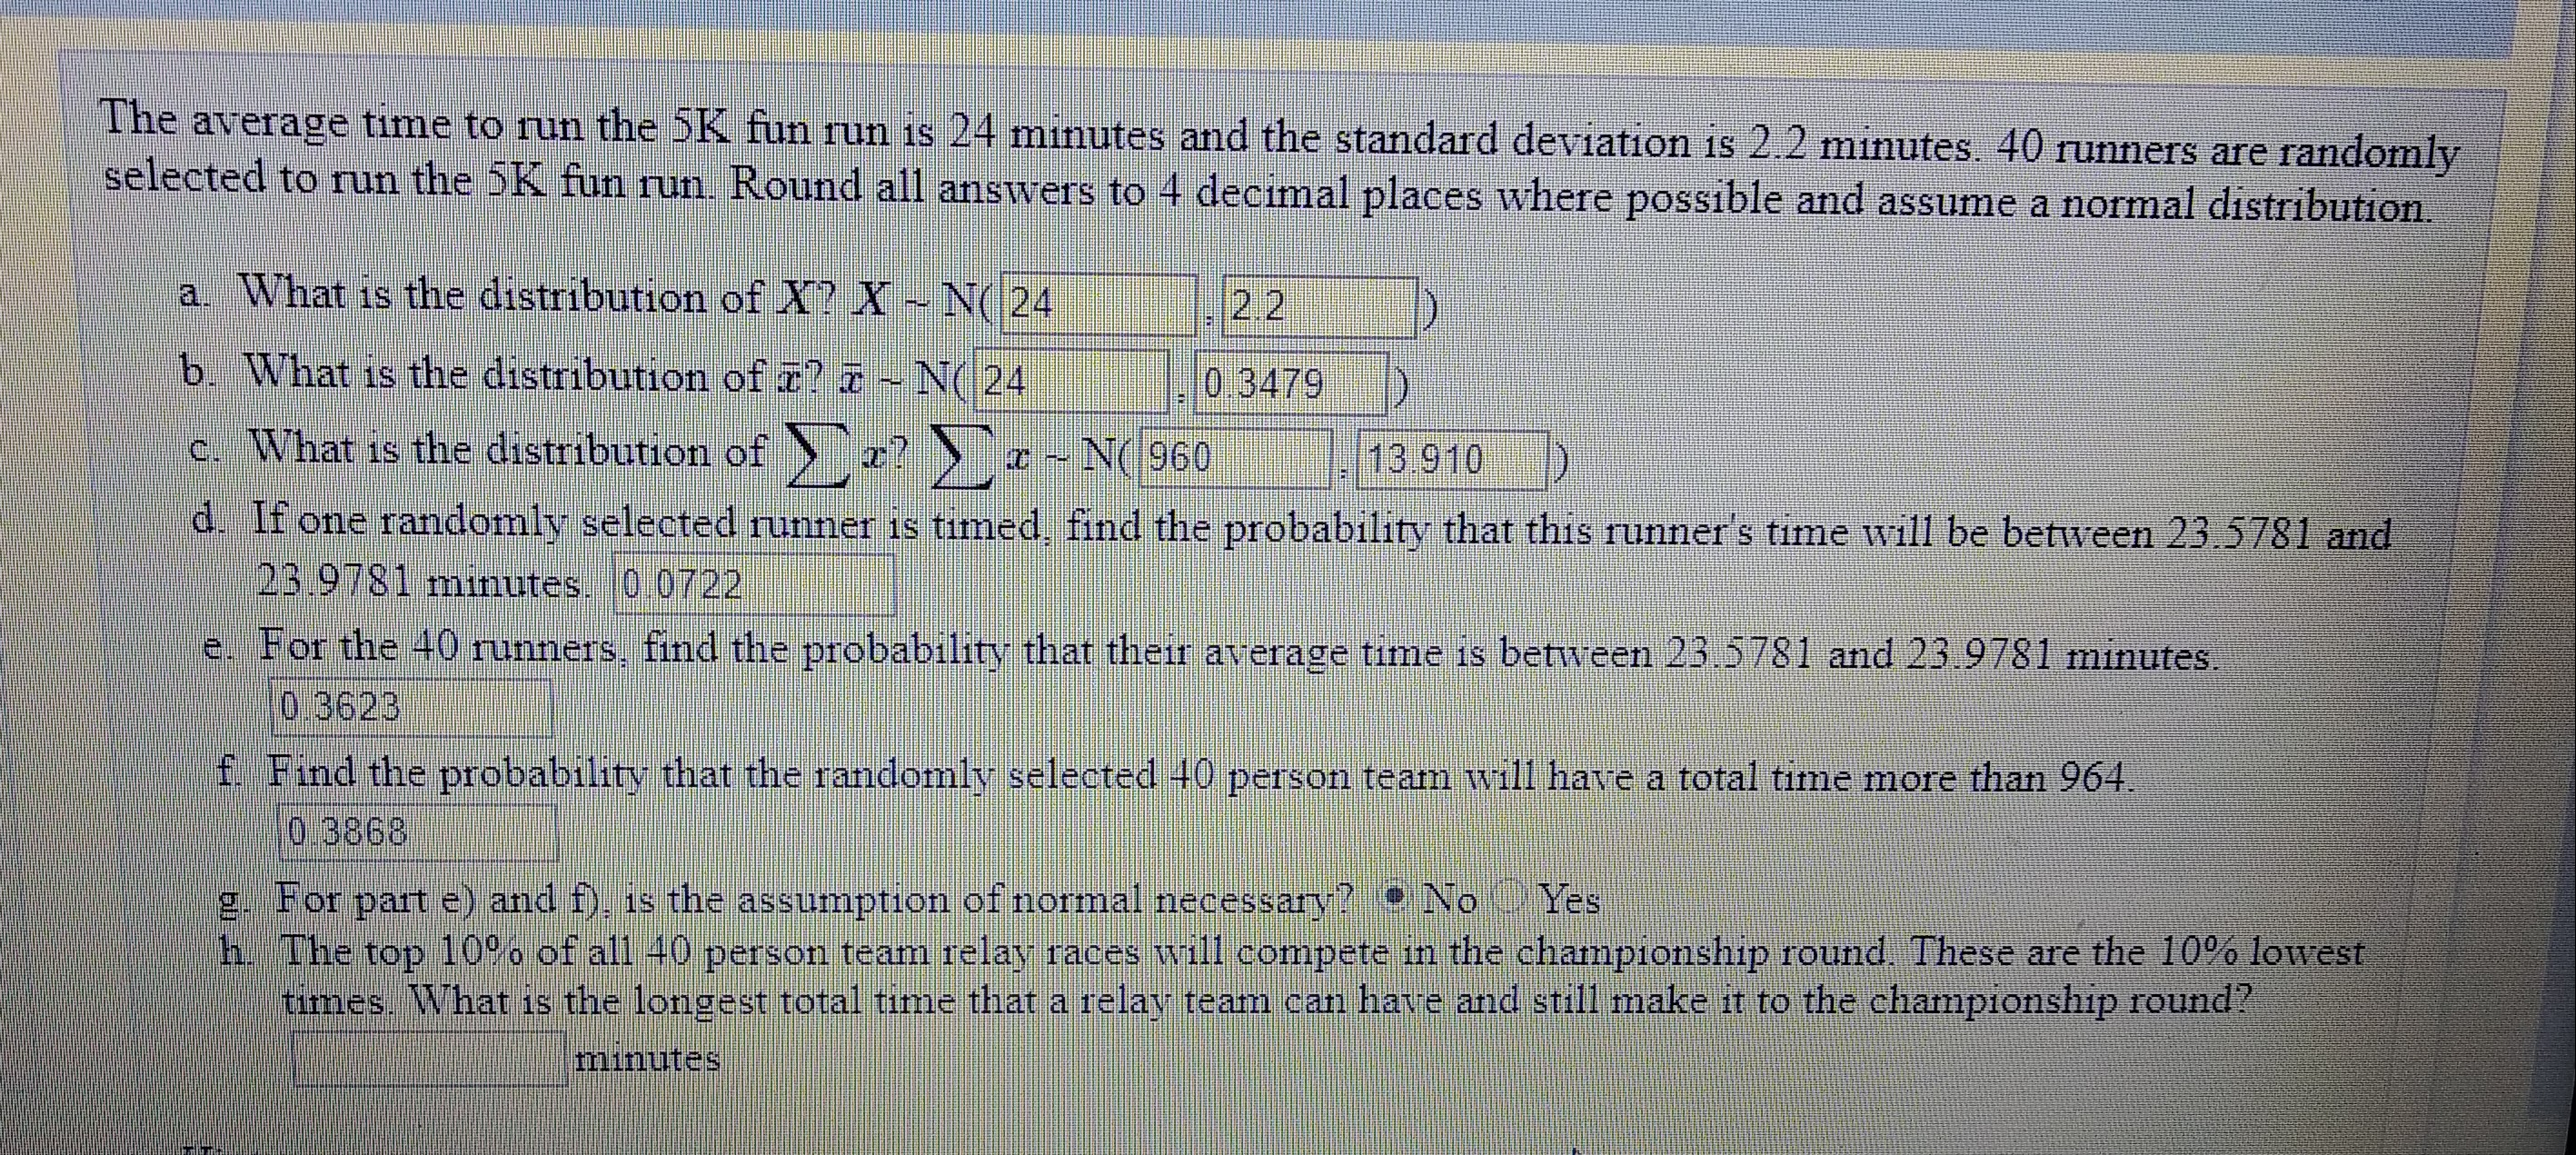 The average time to run the 5K fun run is 24 mınutes and the standard deviation is 2.2 minutes. 40 runners are randomly selected to run the 5K fun run. Round all answers to 4 decimal places where possible and assume a normal distribution. a. What is the distribution of X? X-N( 24 2.2 b. What is the distribution of r? -N( 24 0.3479 c. What is the distribution of -? > ¤ - N(960 13.910 d. If one randomly selected runner is tımed, find the probability that this runner's time will be between 23.5781 and 23.9781 minutes. 0.0722 e. For the 40 runners, find the probability that their average time is between 23.5781 and 23 9781 minutes. 0,3623 f. Find the probability that the randomly selected 40 person team will have a total time more than 964. 0.3868 g. For part e) and f), is the assumption of normal necessary? No Yes h. The top 10%% of all 40 person team relay races will compete in the championship round. These are the 10% lowest times. What is the longest total time that a relav team can have and still make it to the championship round? minutes